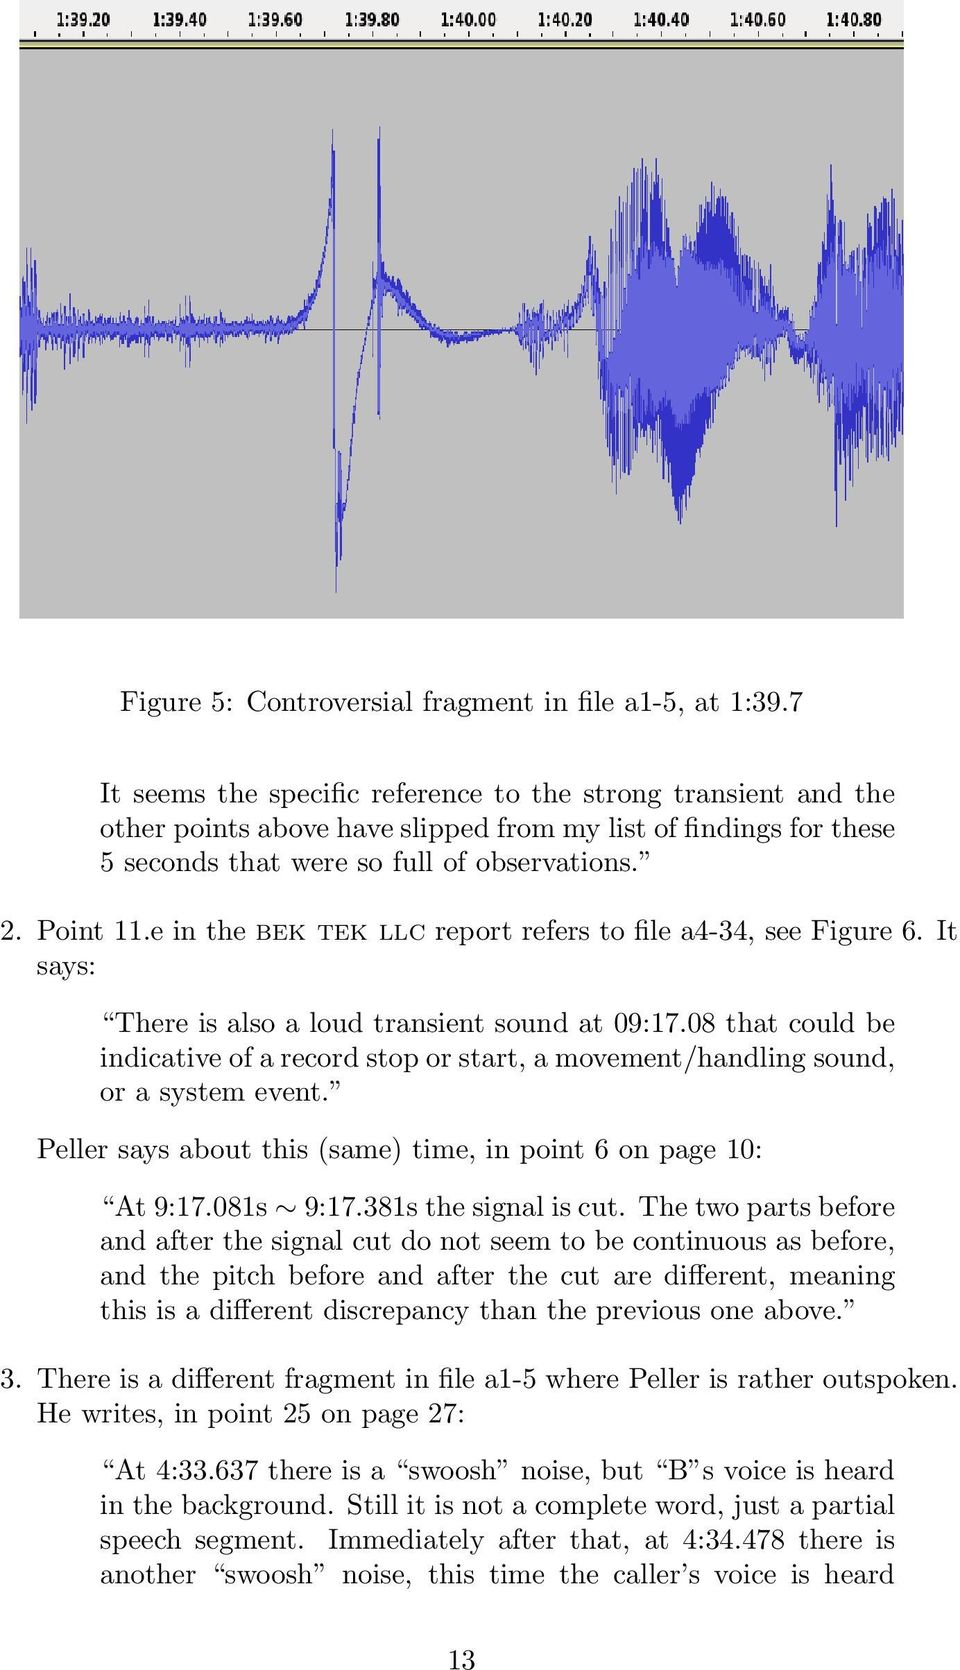 e in the bek tek llc report refers to file a4-34, see Figure 6. It says: There is also a loud transient sound at 09:17.